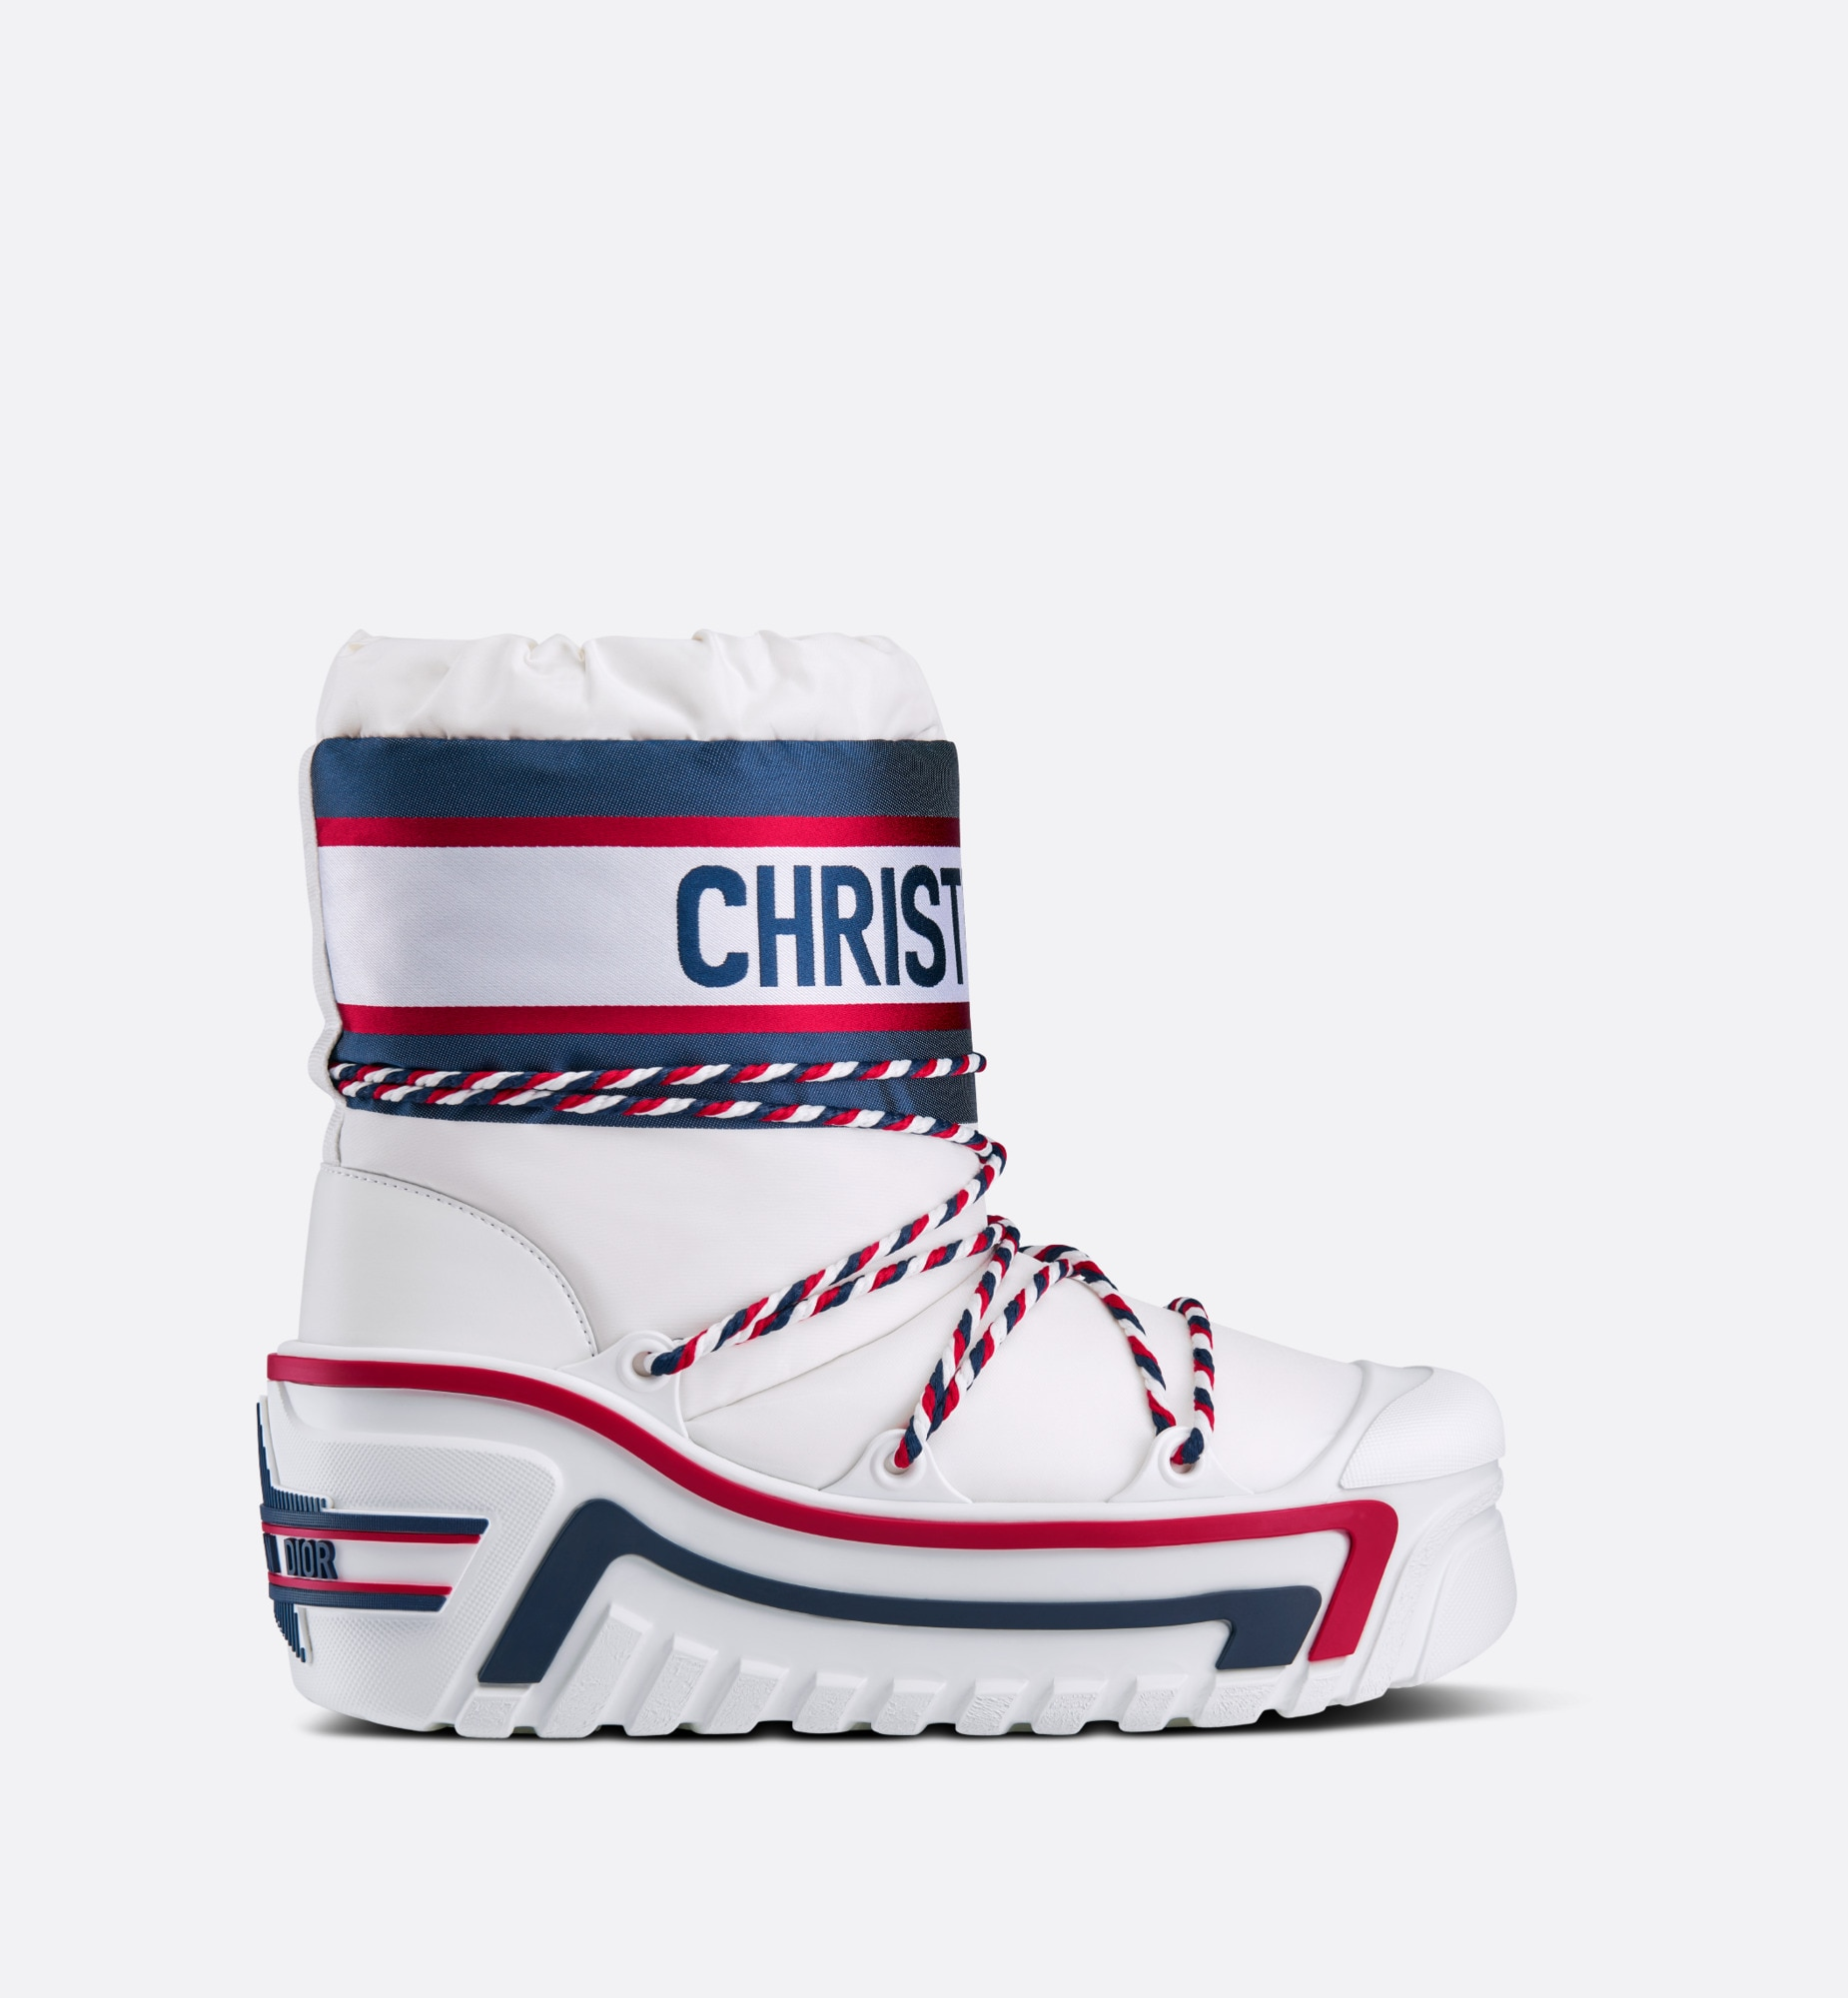 dioralps snow ankle boot | Dior Profile view